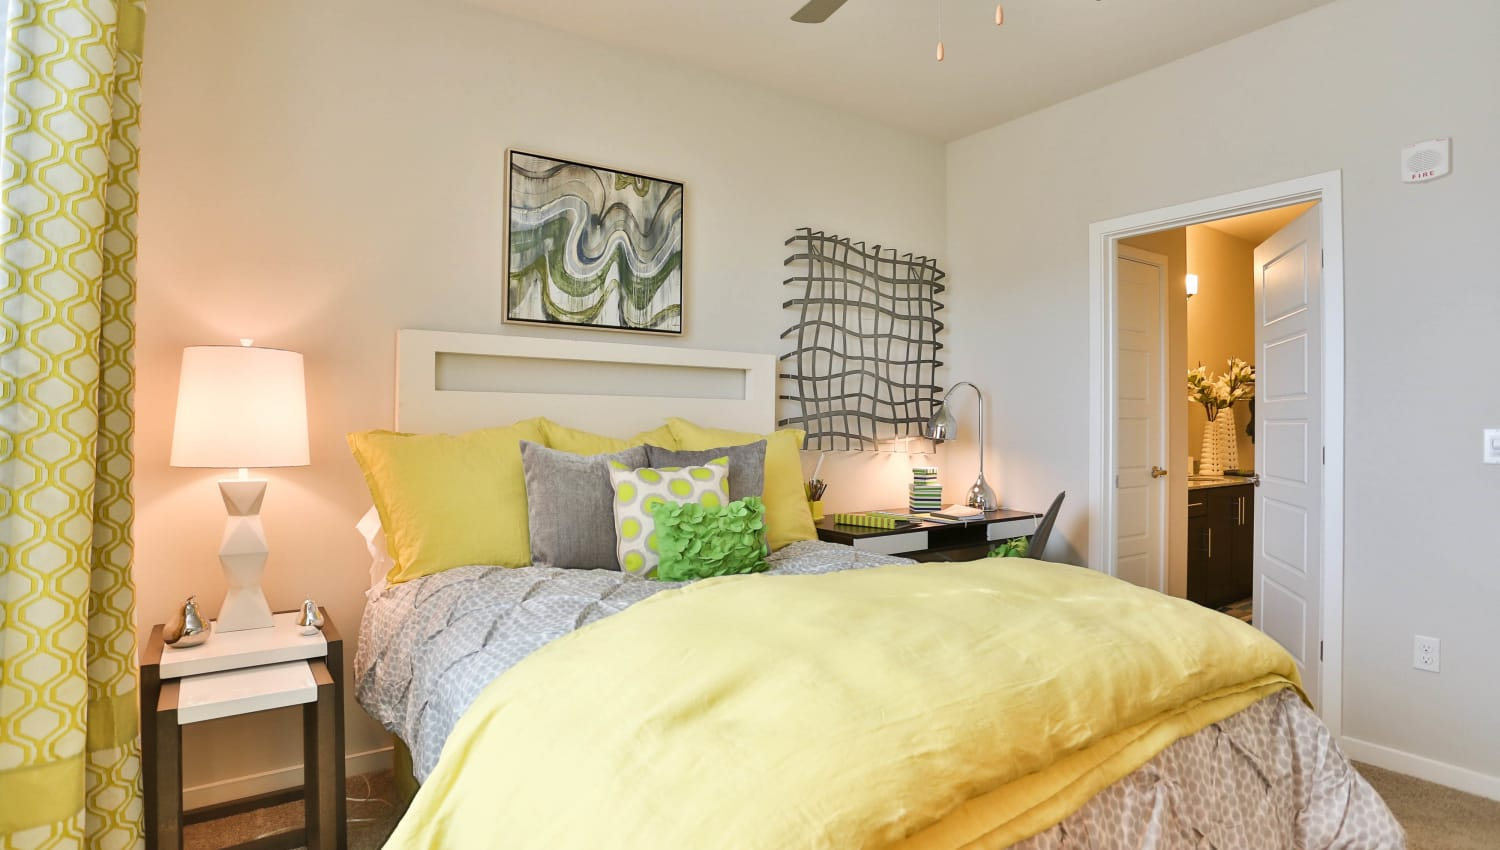 Model home's brightly decorated bedroom at Olympus Steelyard in Chandler, Arizona